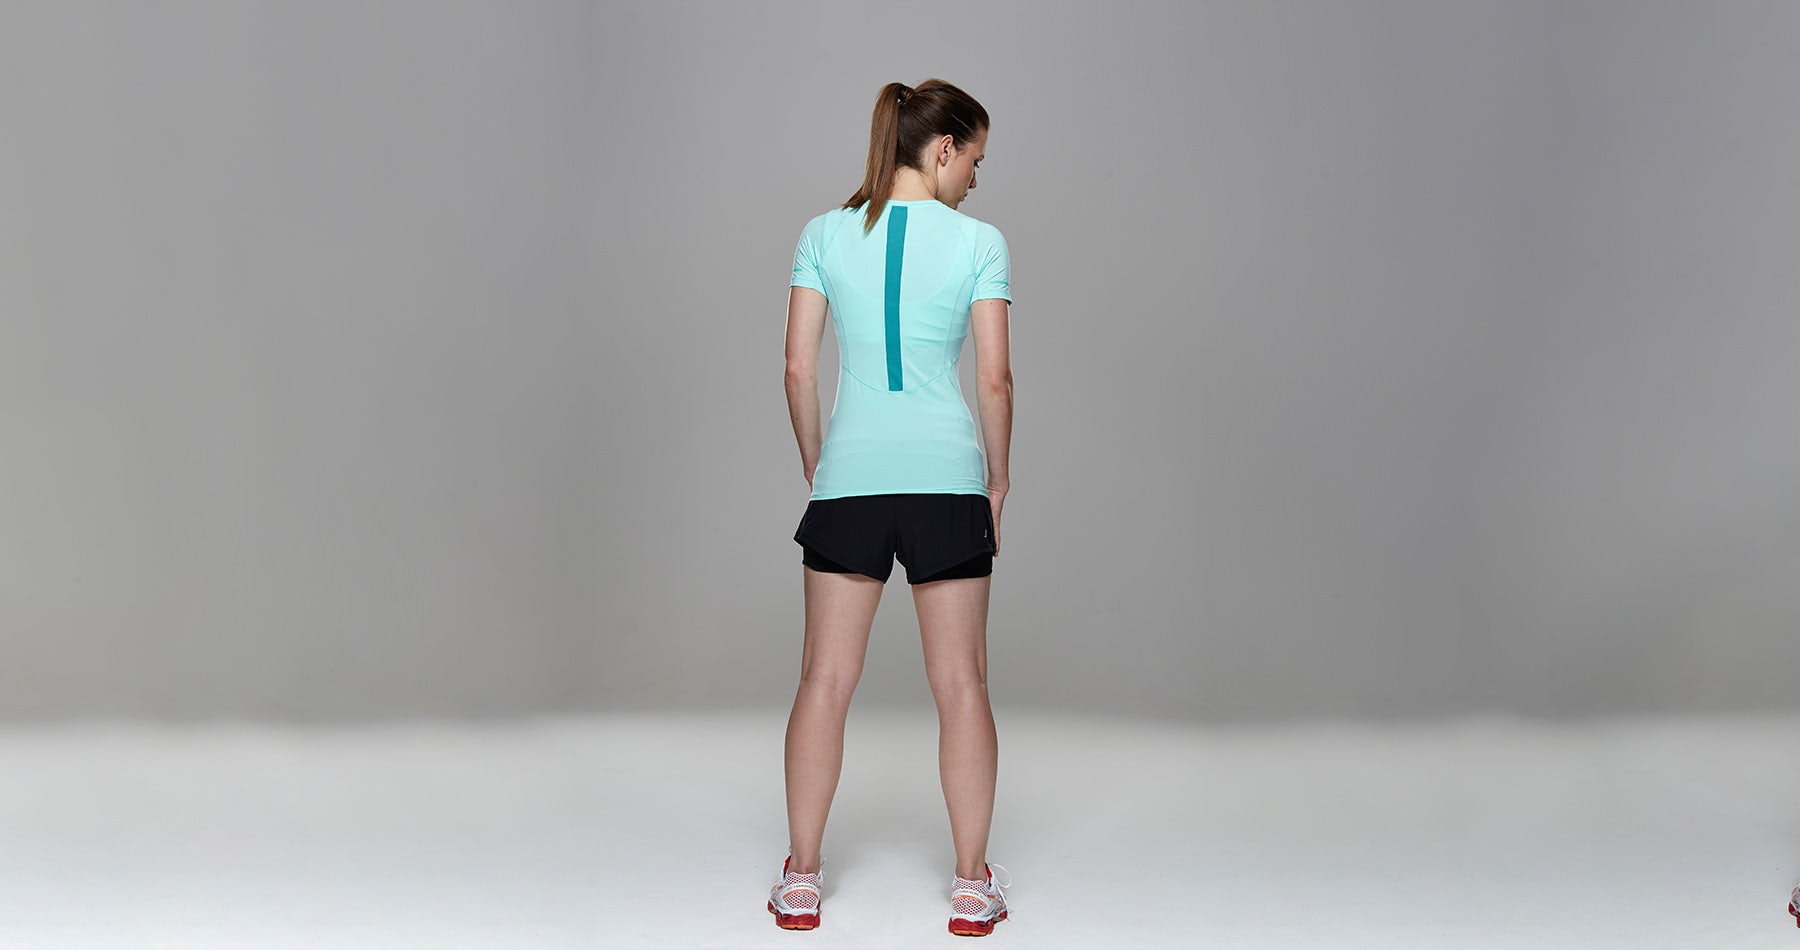 Tribesports Core Women's Short Sleeve Top Turquoise 9